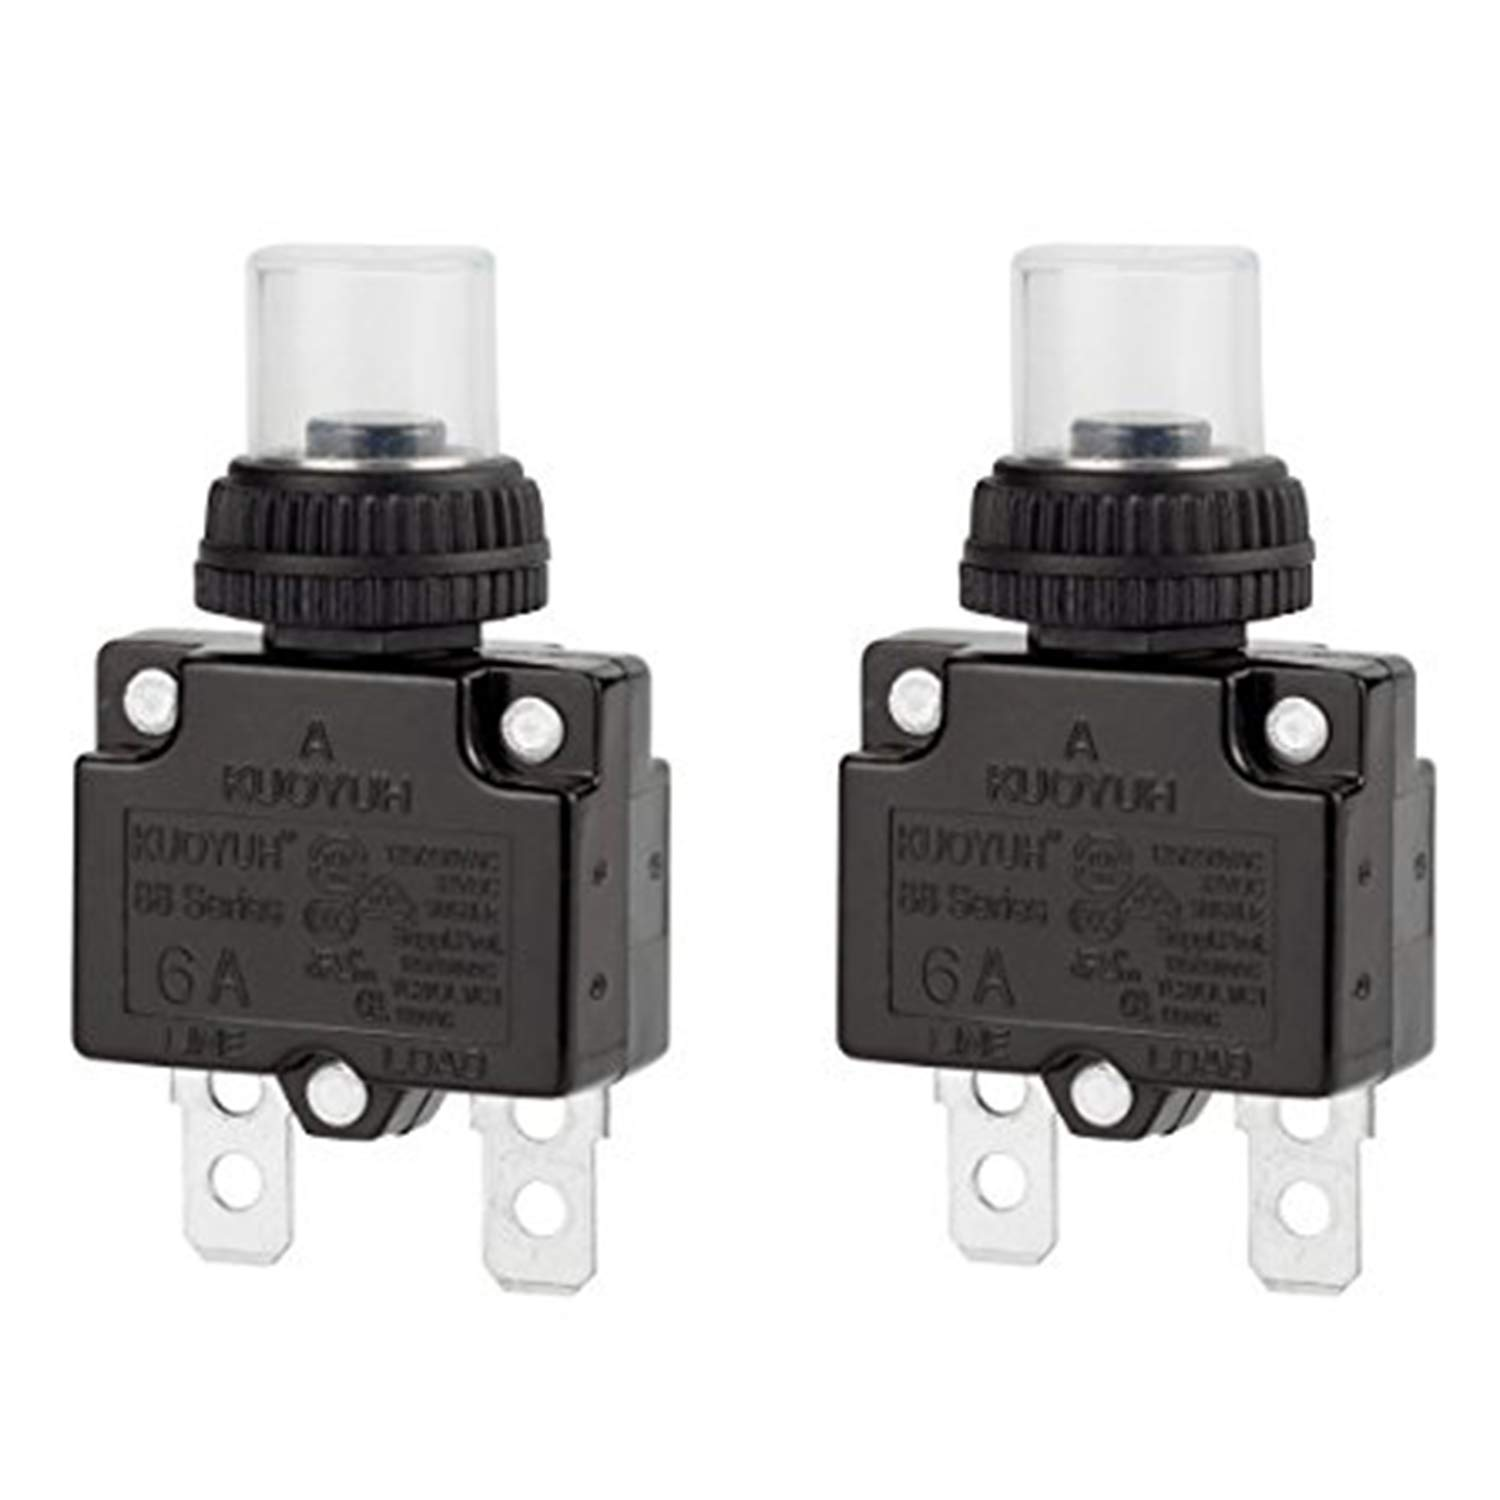 Circuit Breaker,DIYhz Thermal Overload Circuit Breaker 88 Series 6A 32V DC 125/250VAC 50/60Hz Push Button Circuit Breaker Reset Boot Switch and Waterproof Button Transparent Cap 2 Pcs